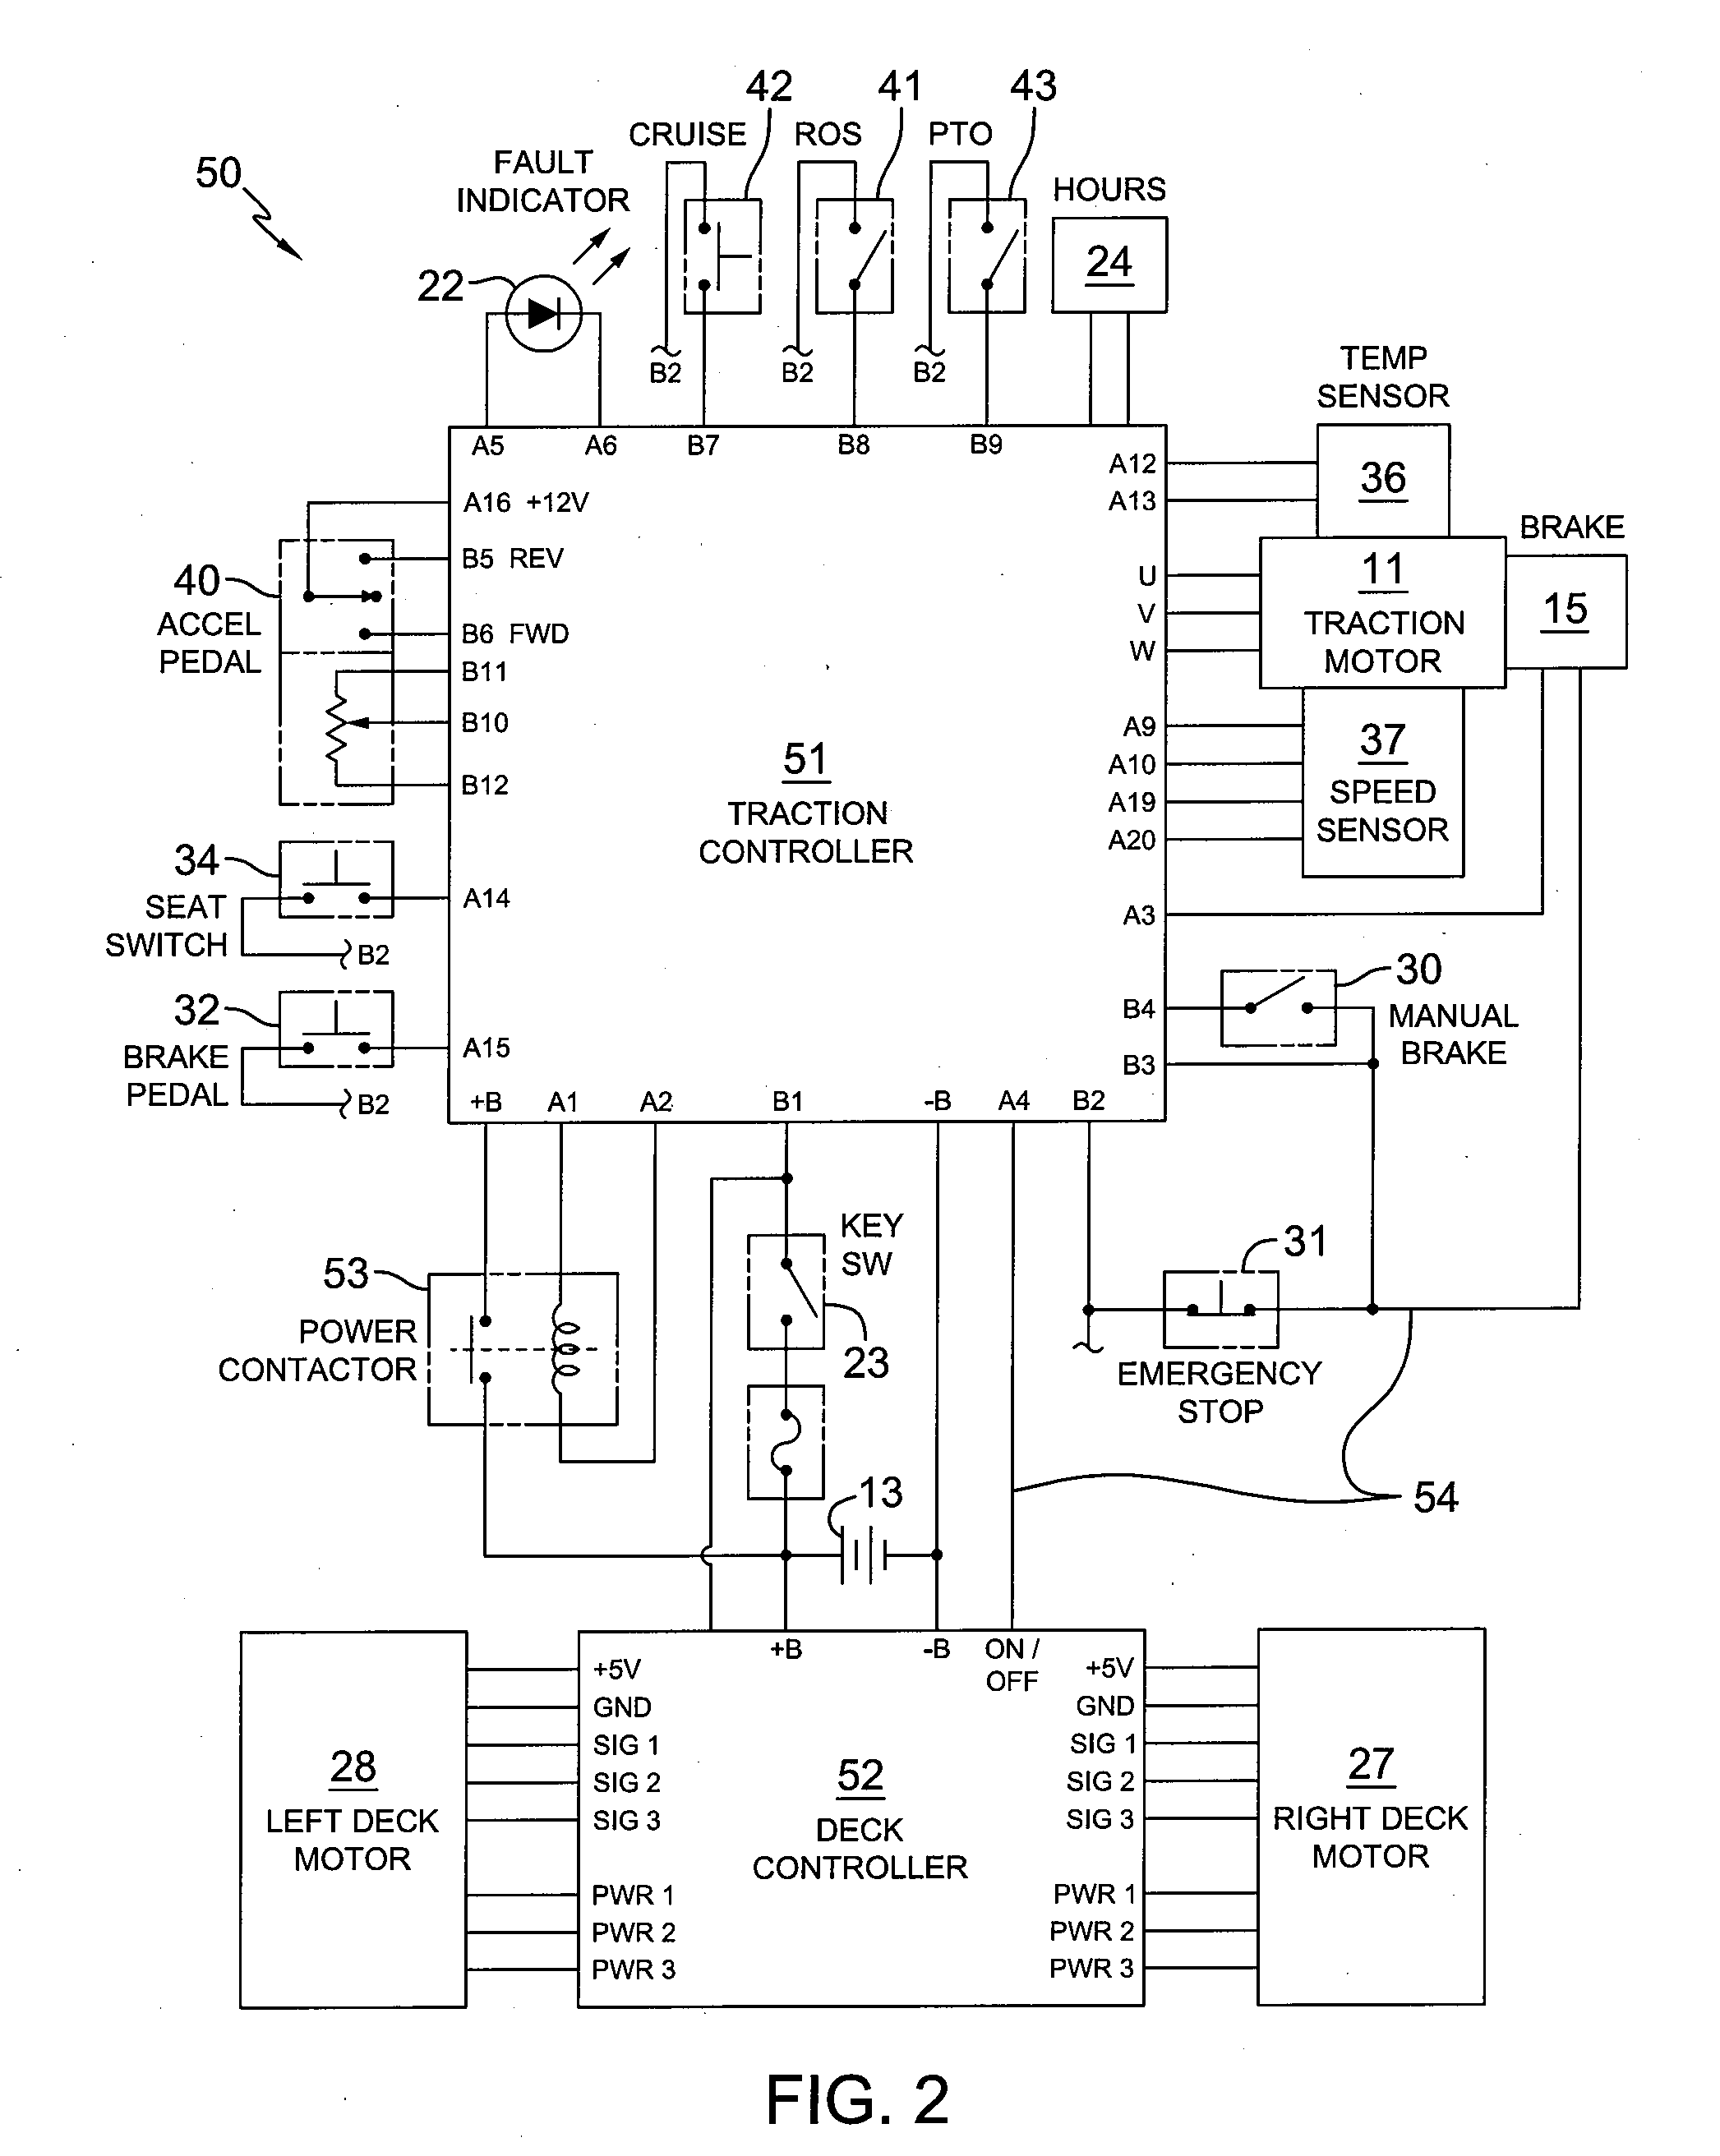 Brevet Us20090069964 Electric Drive Vehicle Control System 12 Volt Latching Relay Diagram Likewise Starter Kill Patent Drawing